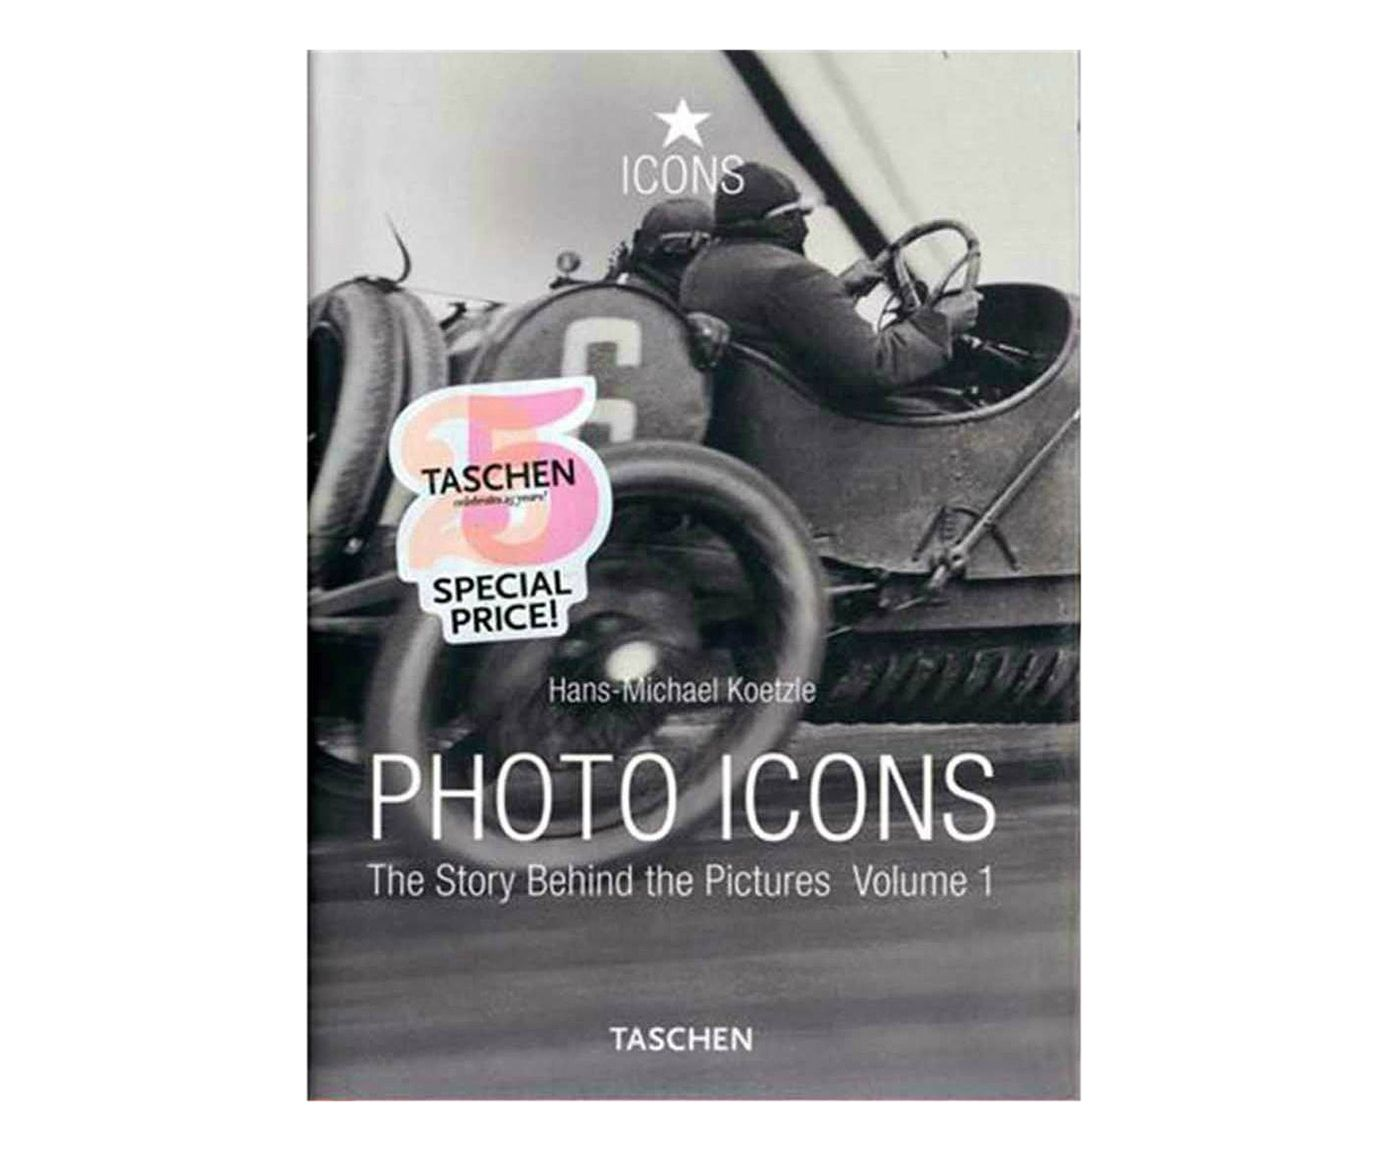 Livro Photo Icons - Volume 1 | Westwing.com.br